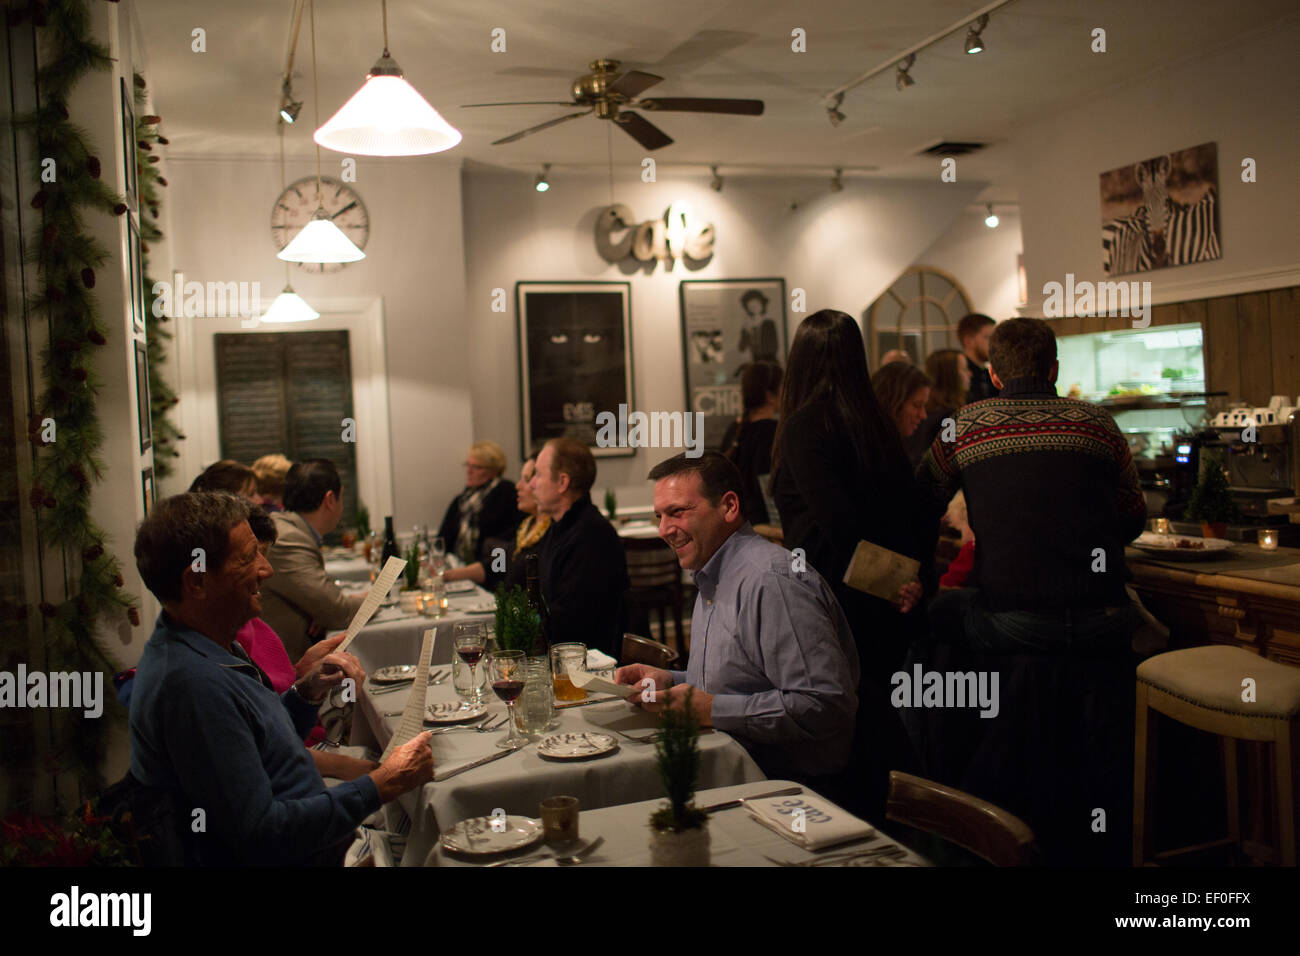 Customers dining at Baldanza Market and Cafe in New Canaan, Connecticut. - Stock Image